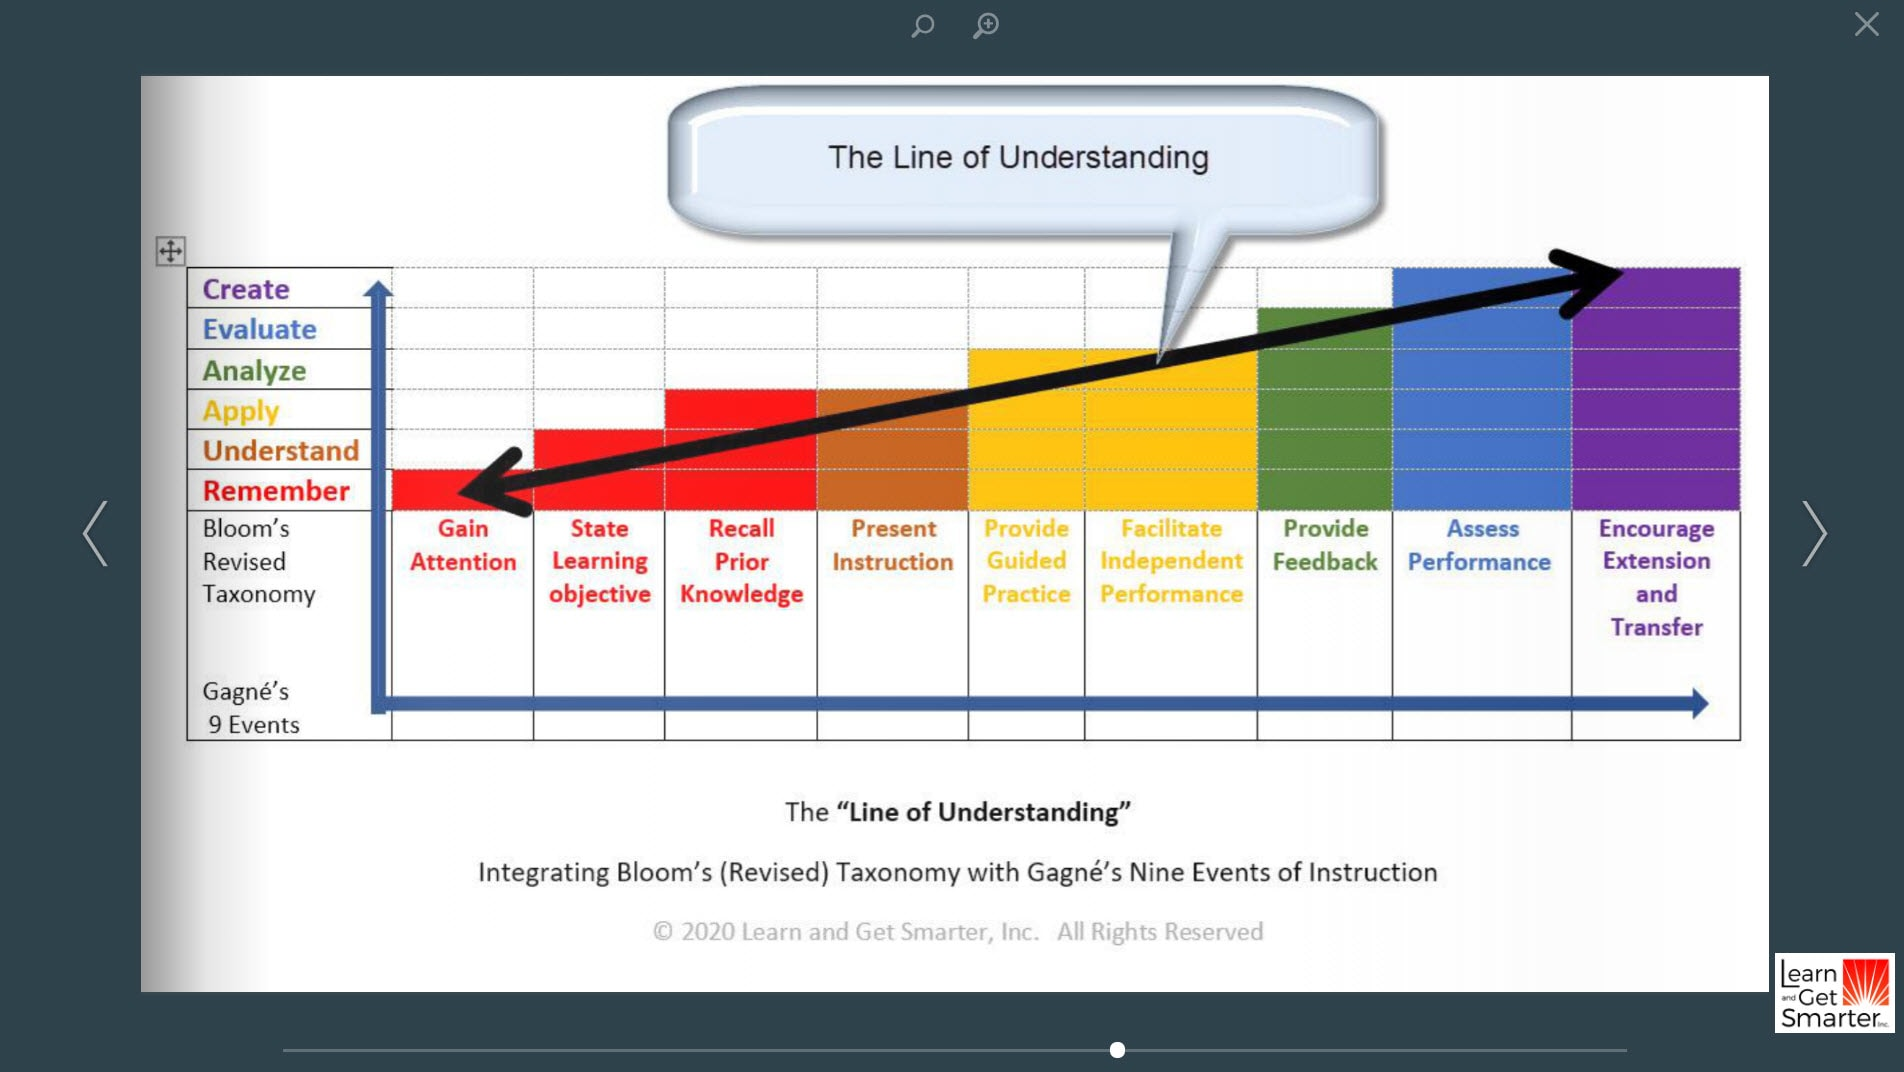 Graphic showing the Line of Understanding: where Bloom's Taxonomy meets Gagne's 9 Events of Instruction The Line of Understanding © Learn and Get Smarter, Inc. All Rights Reserved